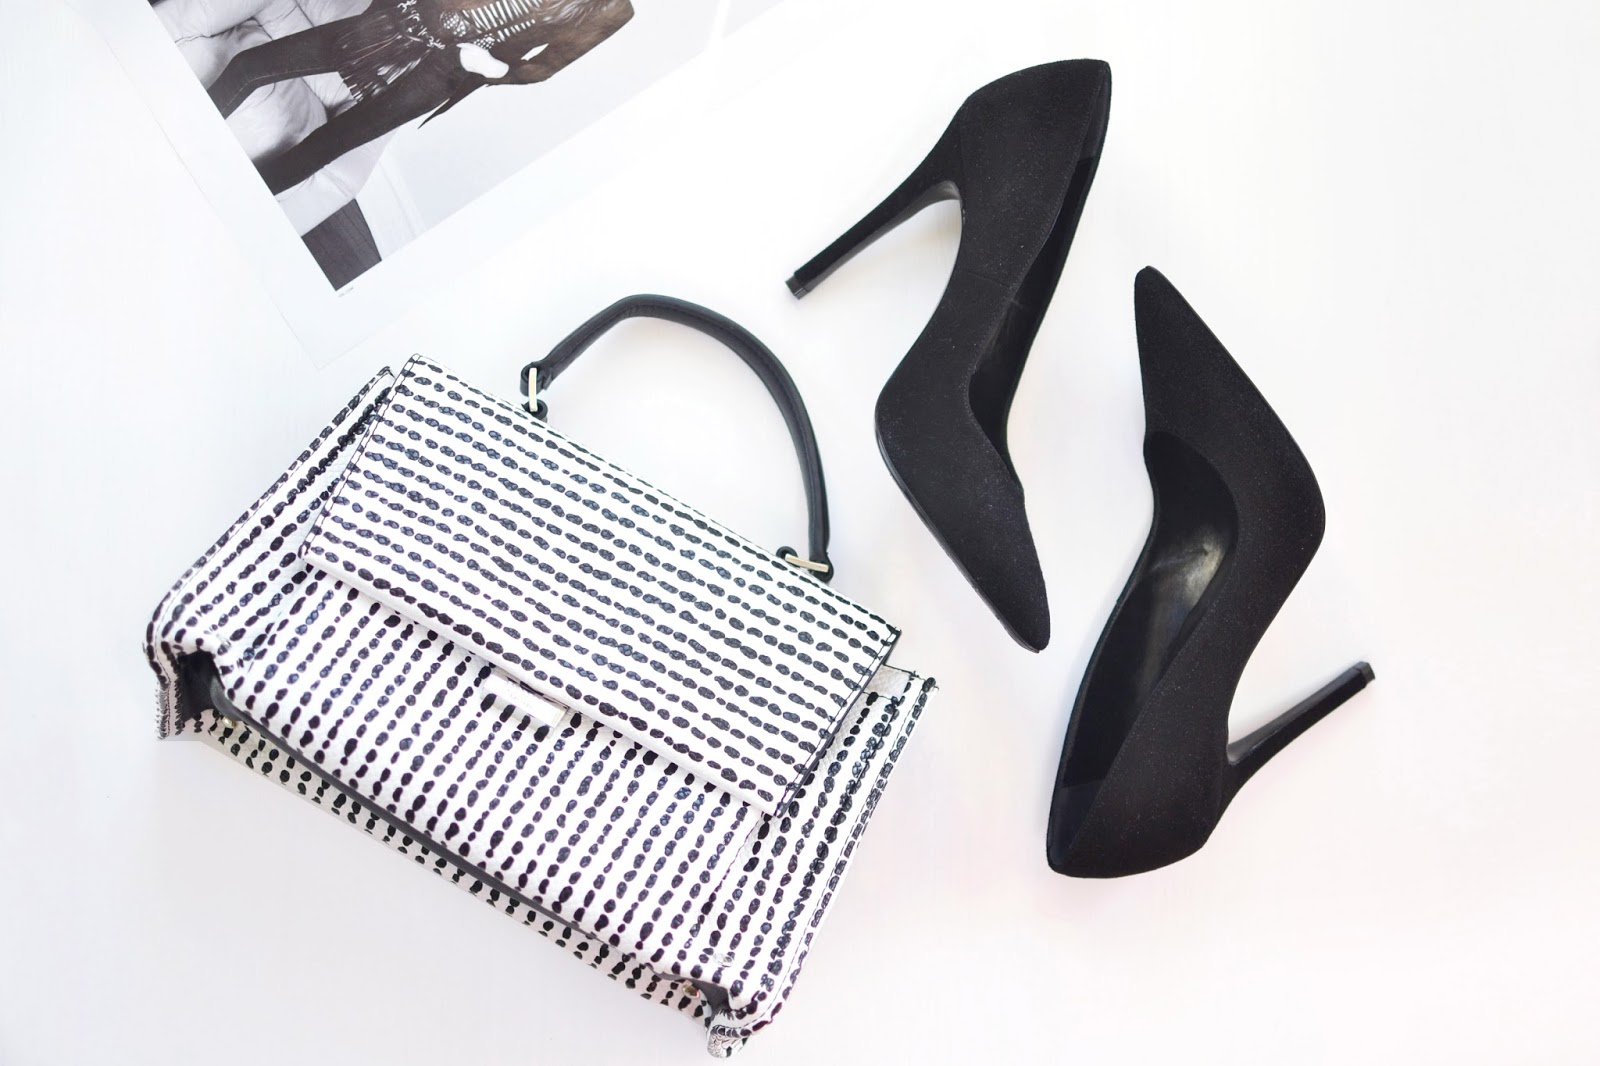 monochrome accessories, fiorelli bags, black court shoes